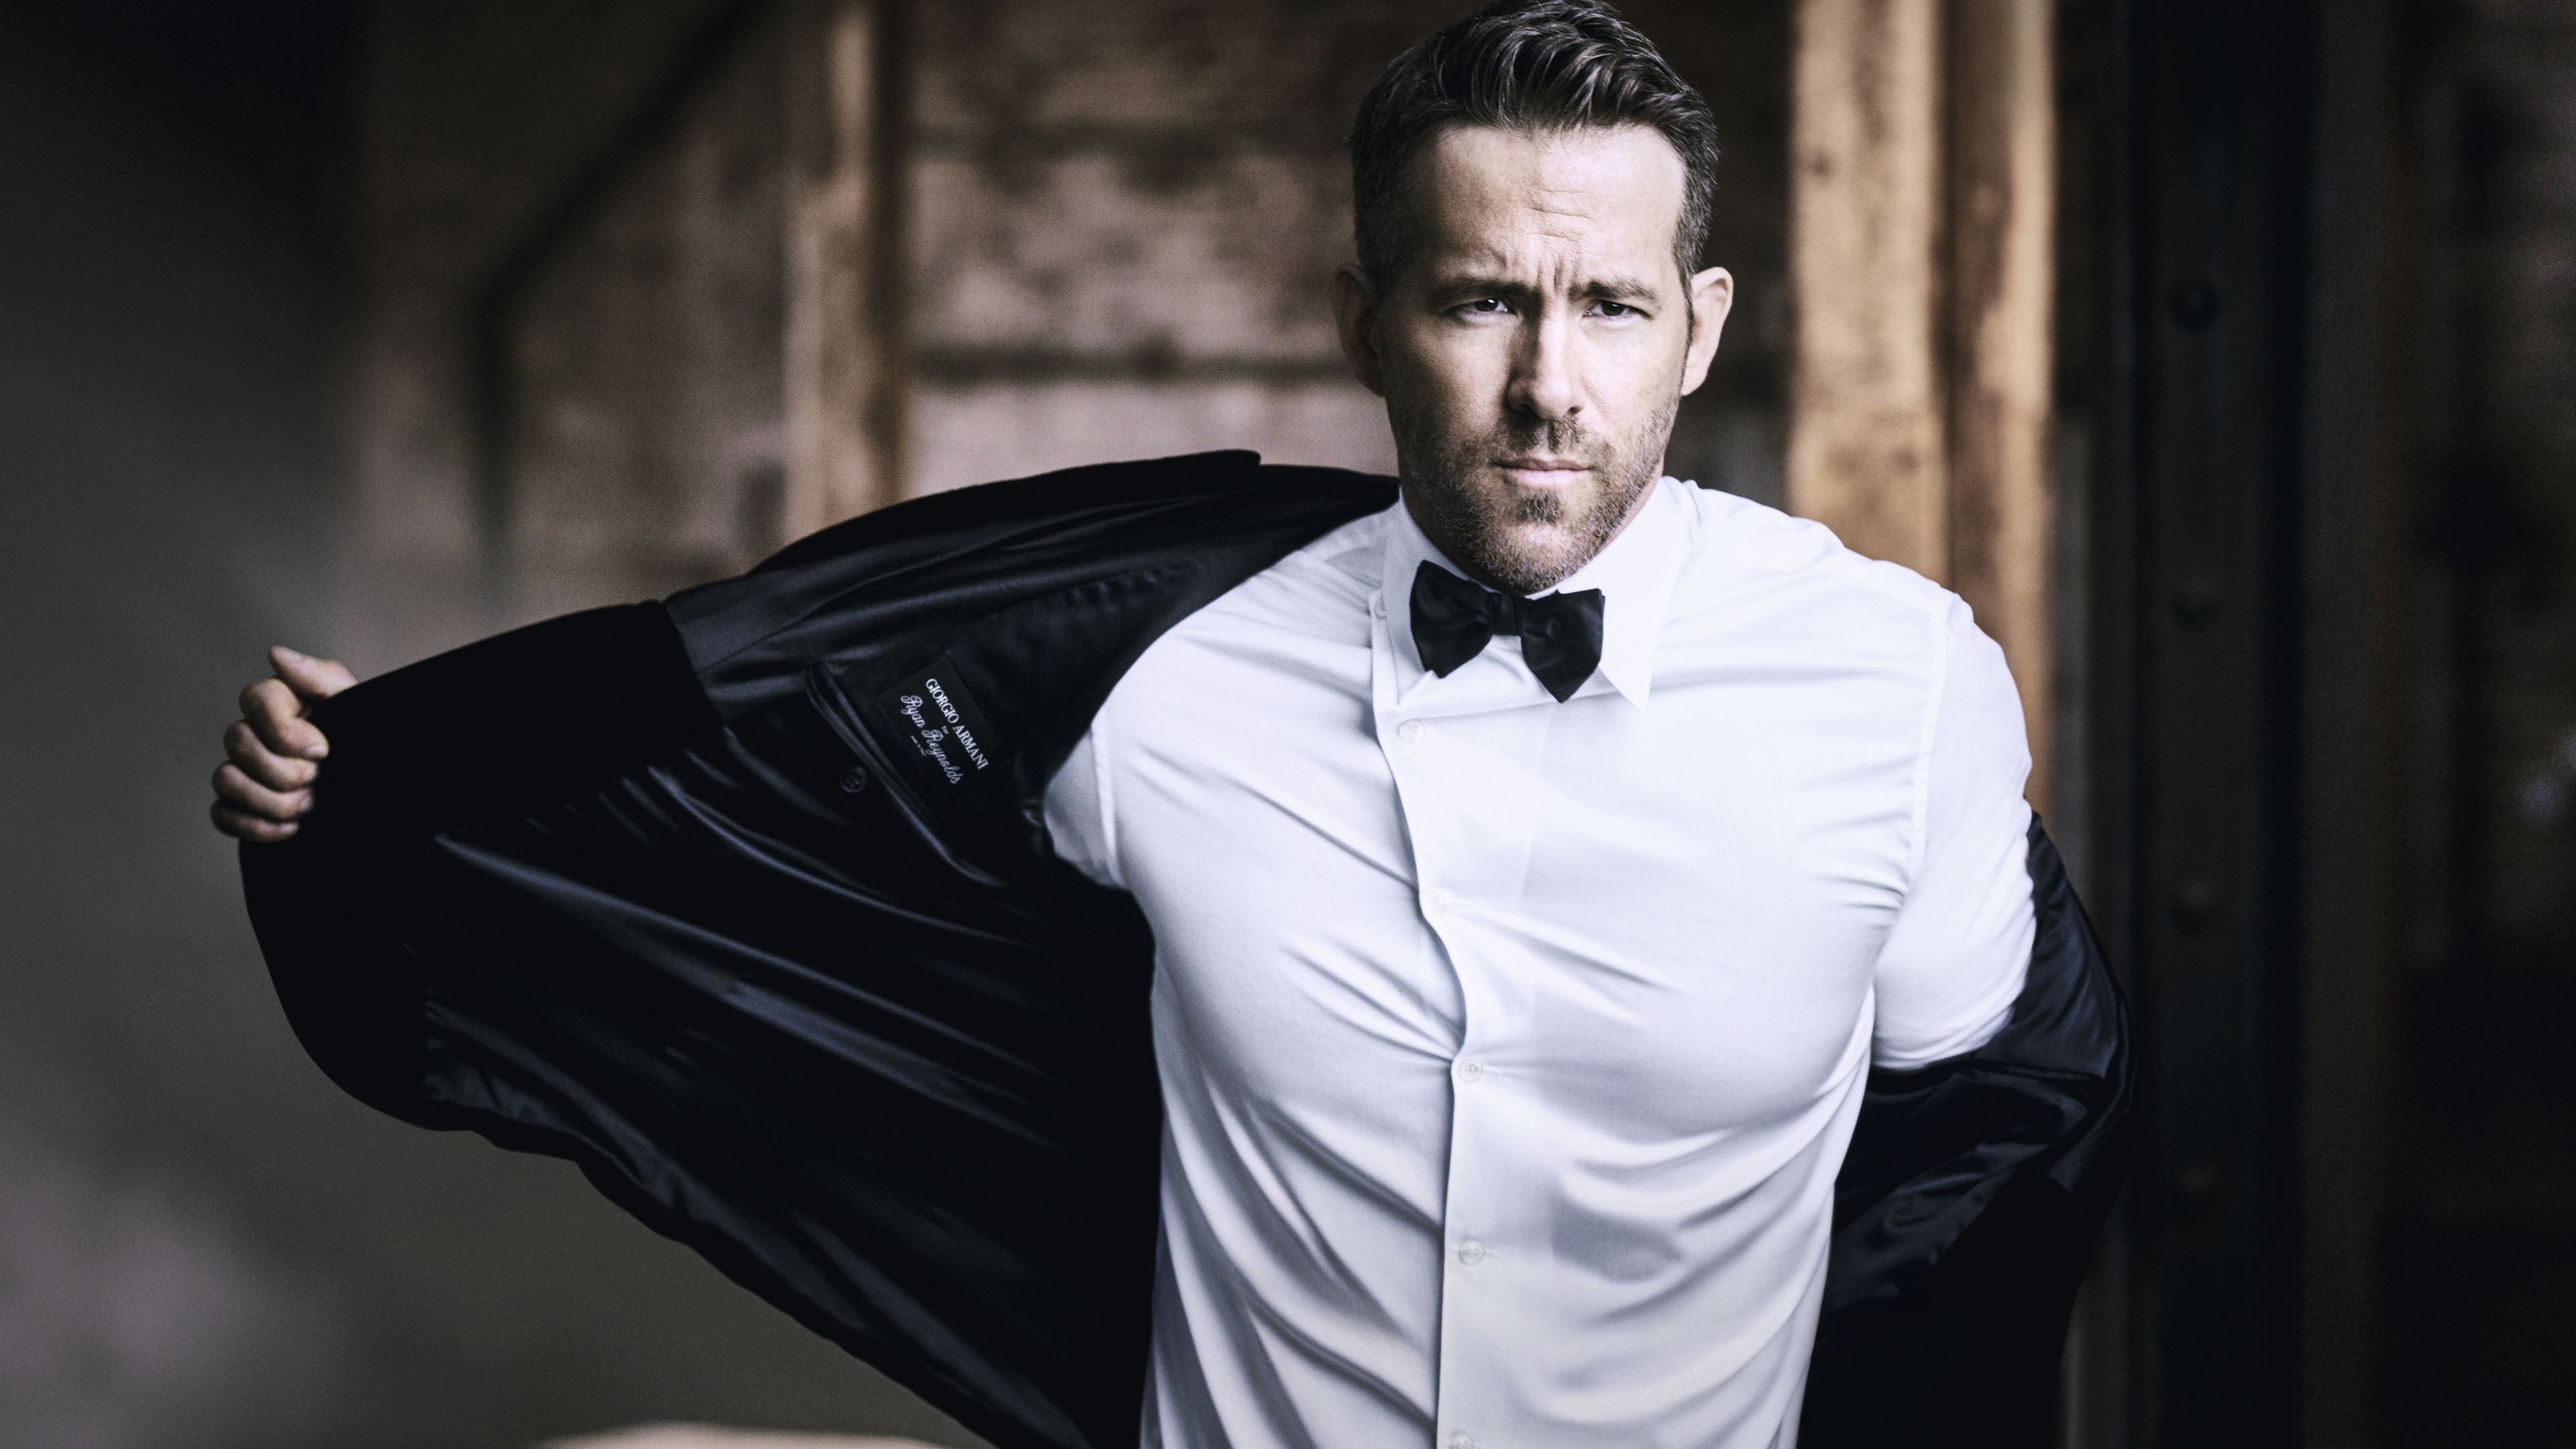 ryan reynolds 2019 4k 1553073543 - Ryan Reynolds 2019 4k - ryan reynolds wallpapers, male celebrities wallpapers, hd-wallpapers, boys wallpapers, 8k wallpapers, 5k wallpapers, 4k-wallpapers